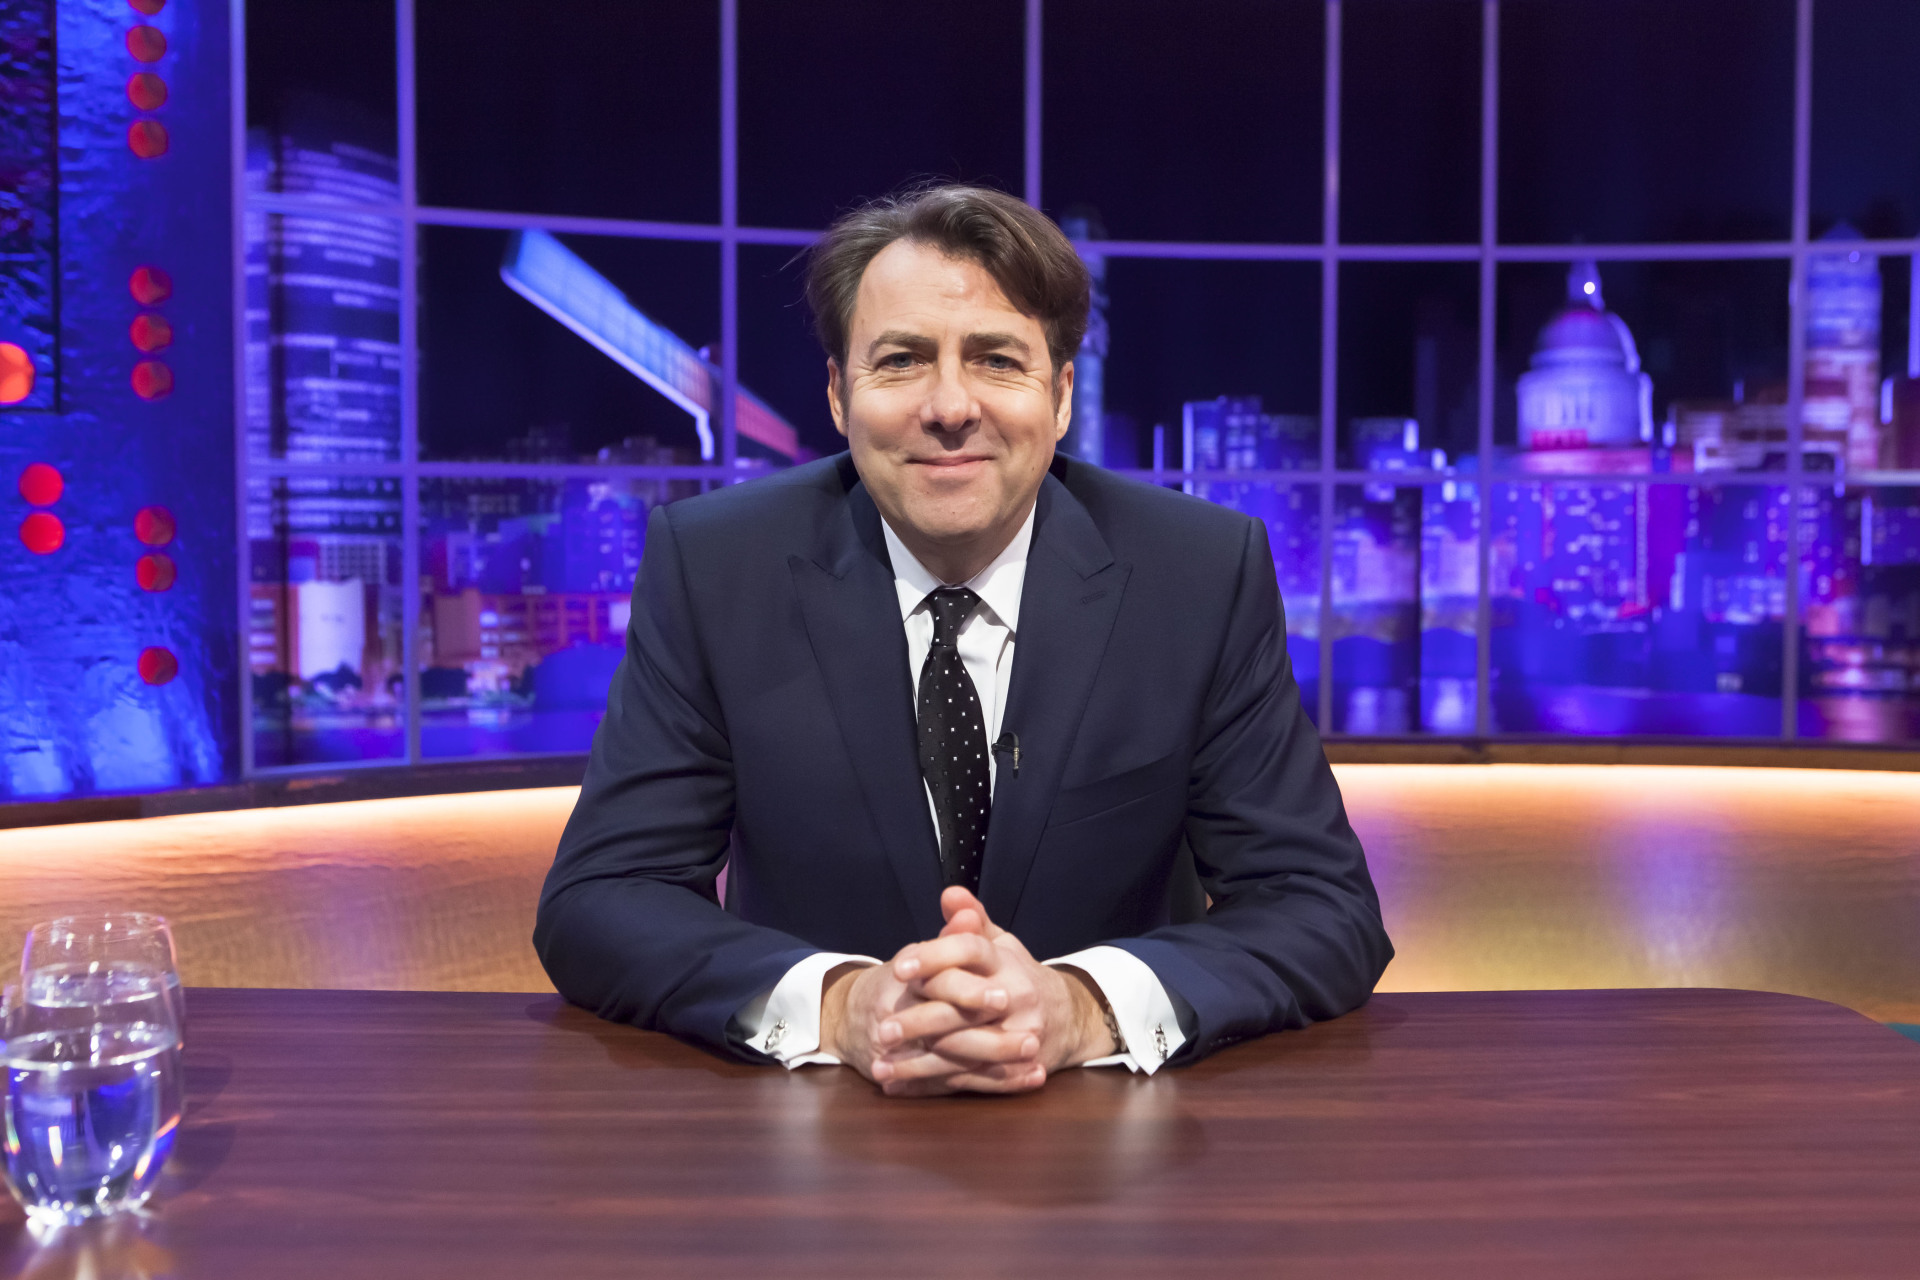 JONATHAN ROSS TO HOST AN EVENING WITH MICHAEL DOUGLAS